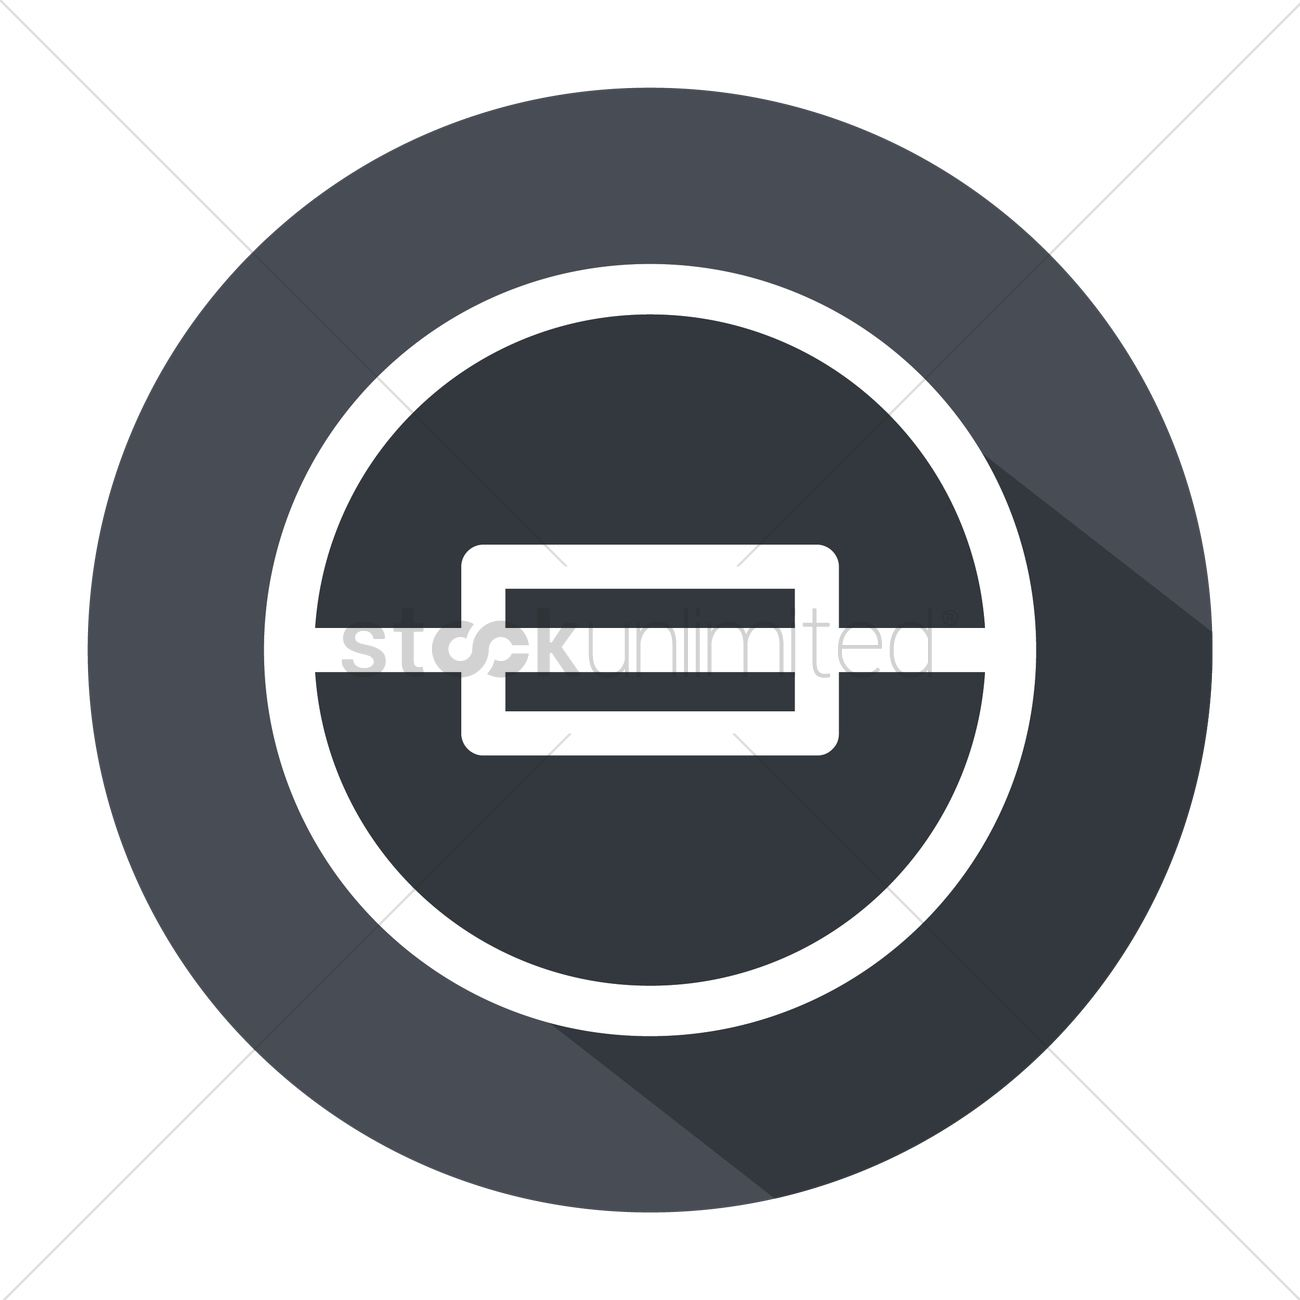 Free electric circuit symbol for fuse vector image 1248233 free electric circuit symbol for fuse vector graphic biocorpaavc